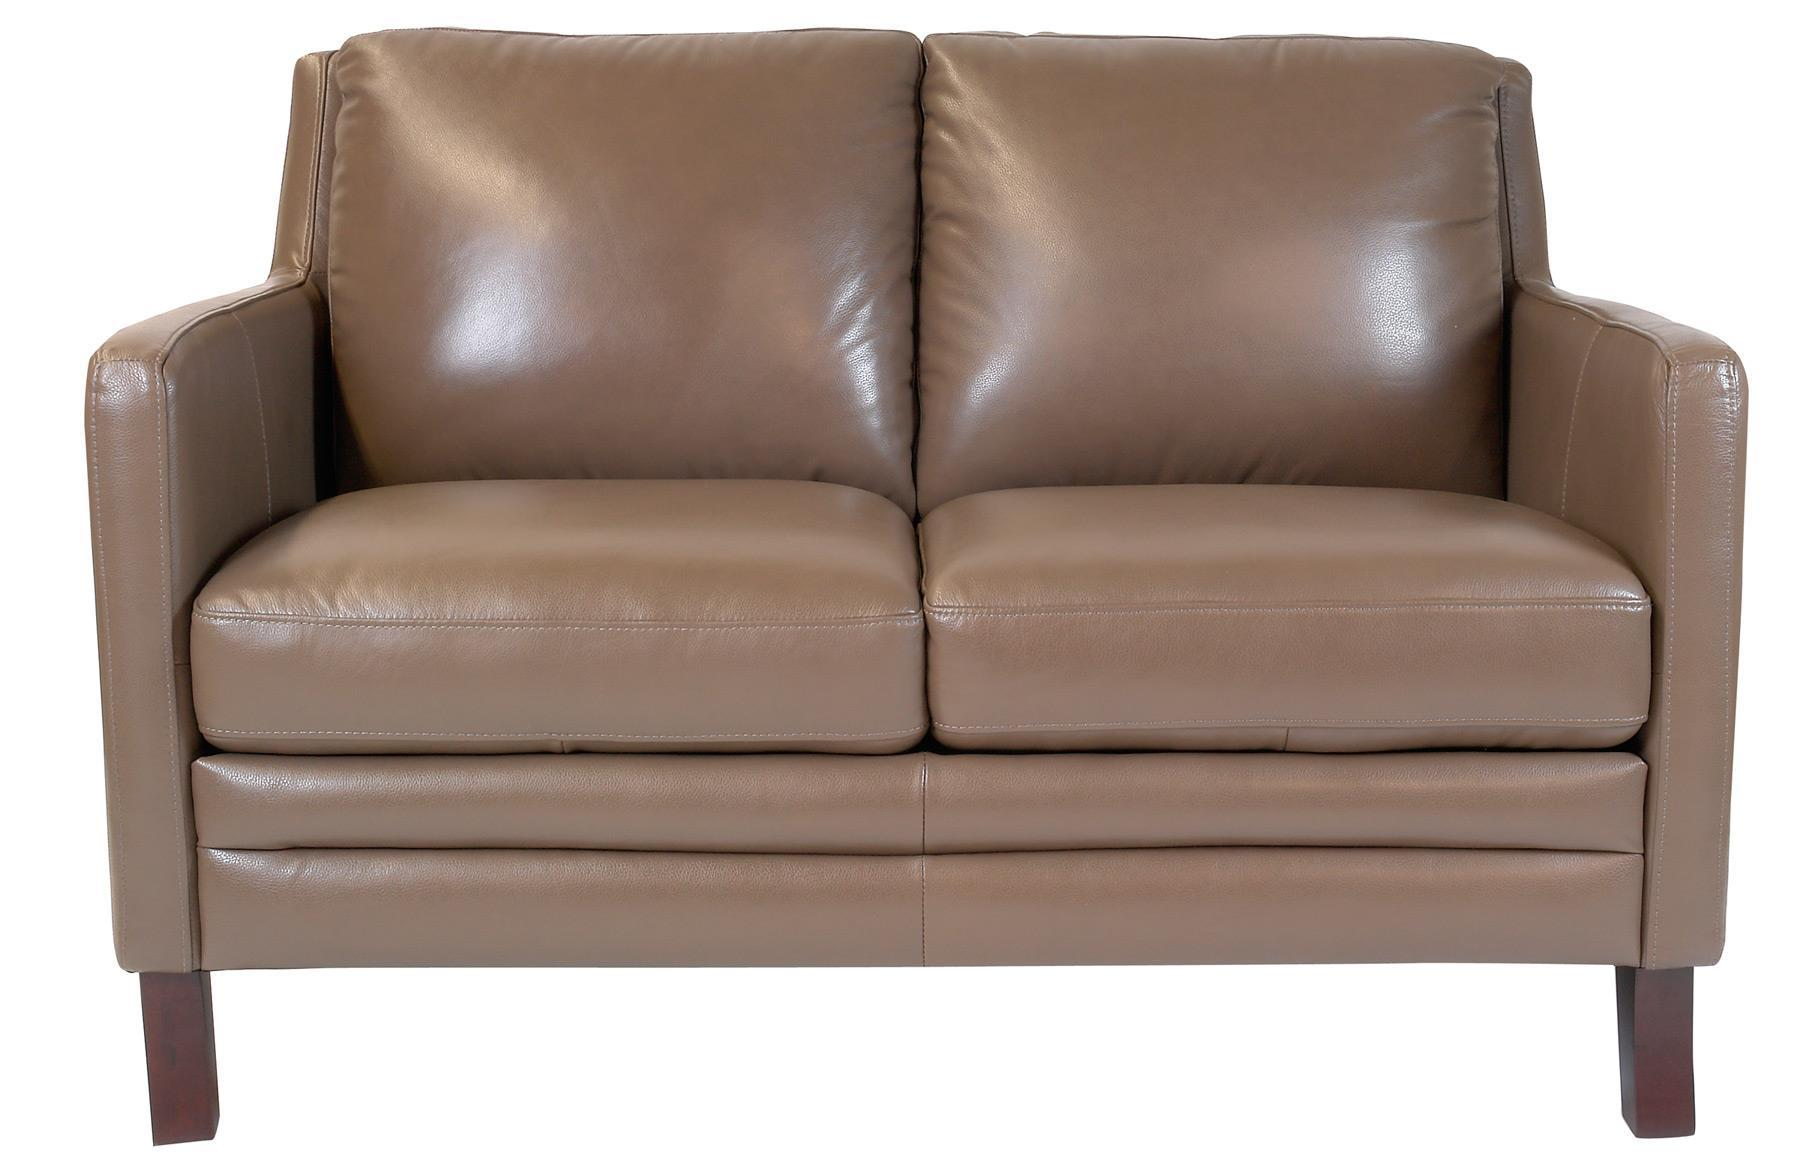 modernclassics tan lc style grande loveseat htm corbusier pc mc store feather wrapped le inspired by com d relaxed